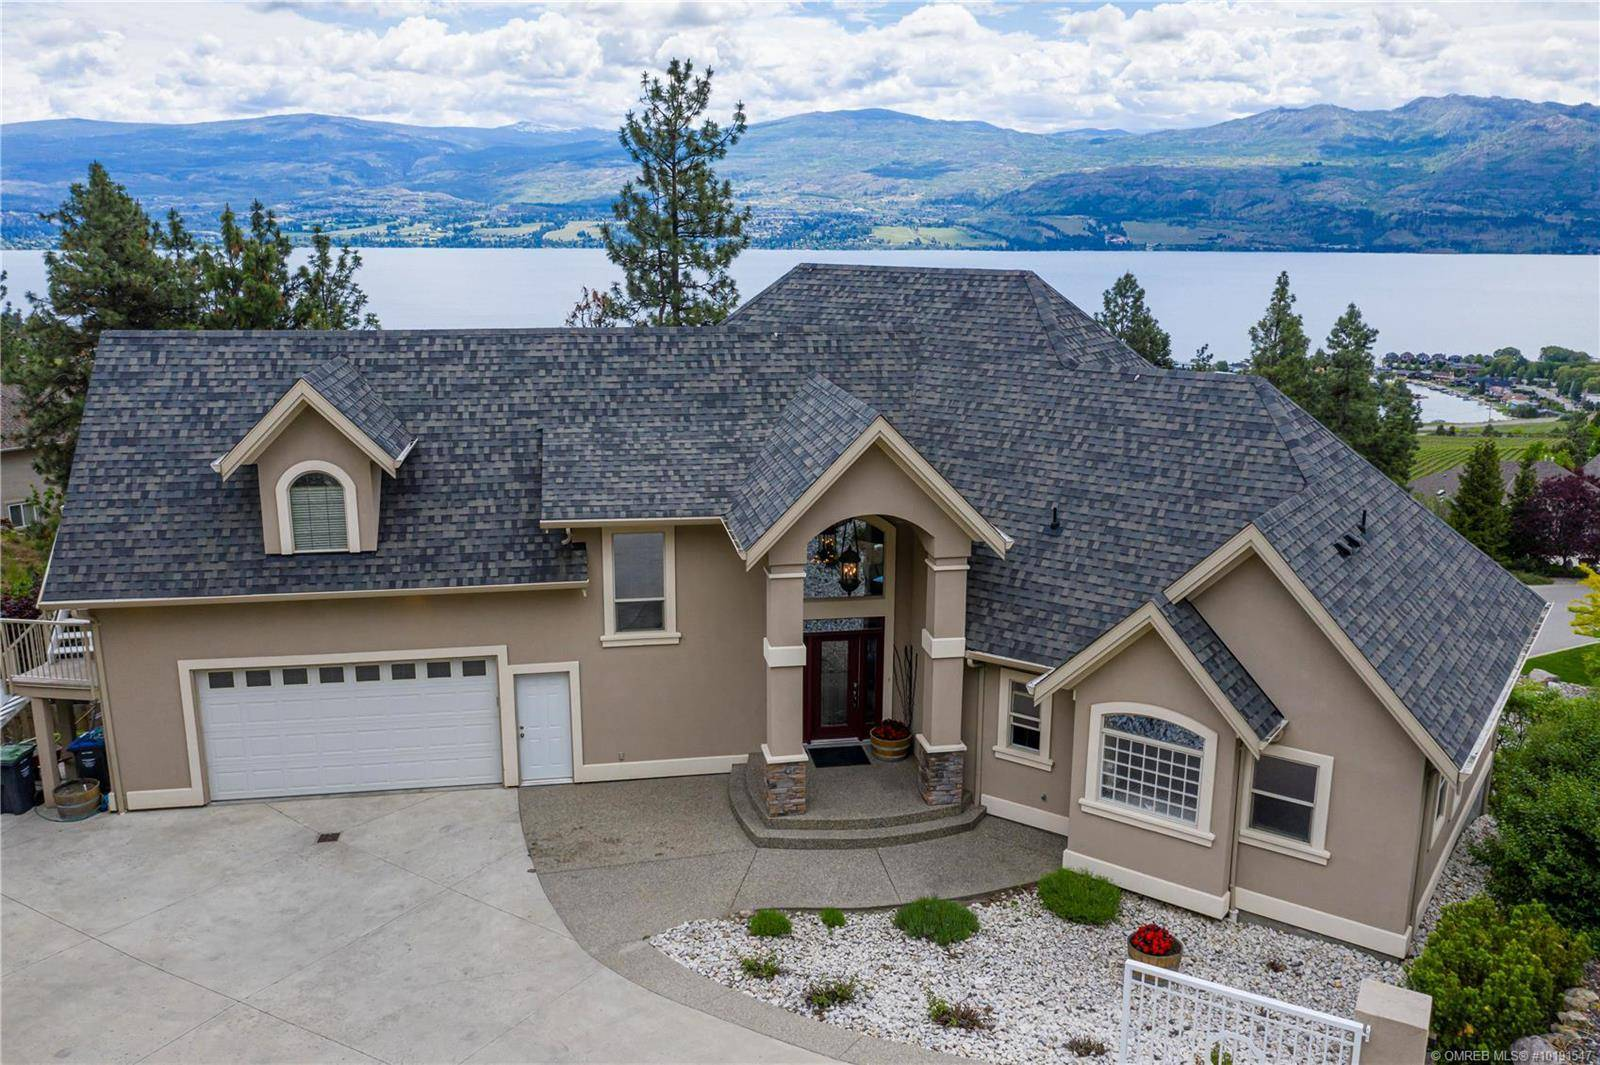 Home for sale at 1450 Gregory Rd West Kelowna British Columbia - MLS: 10191547